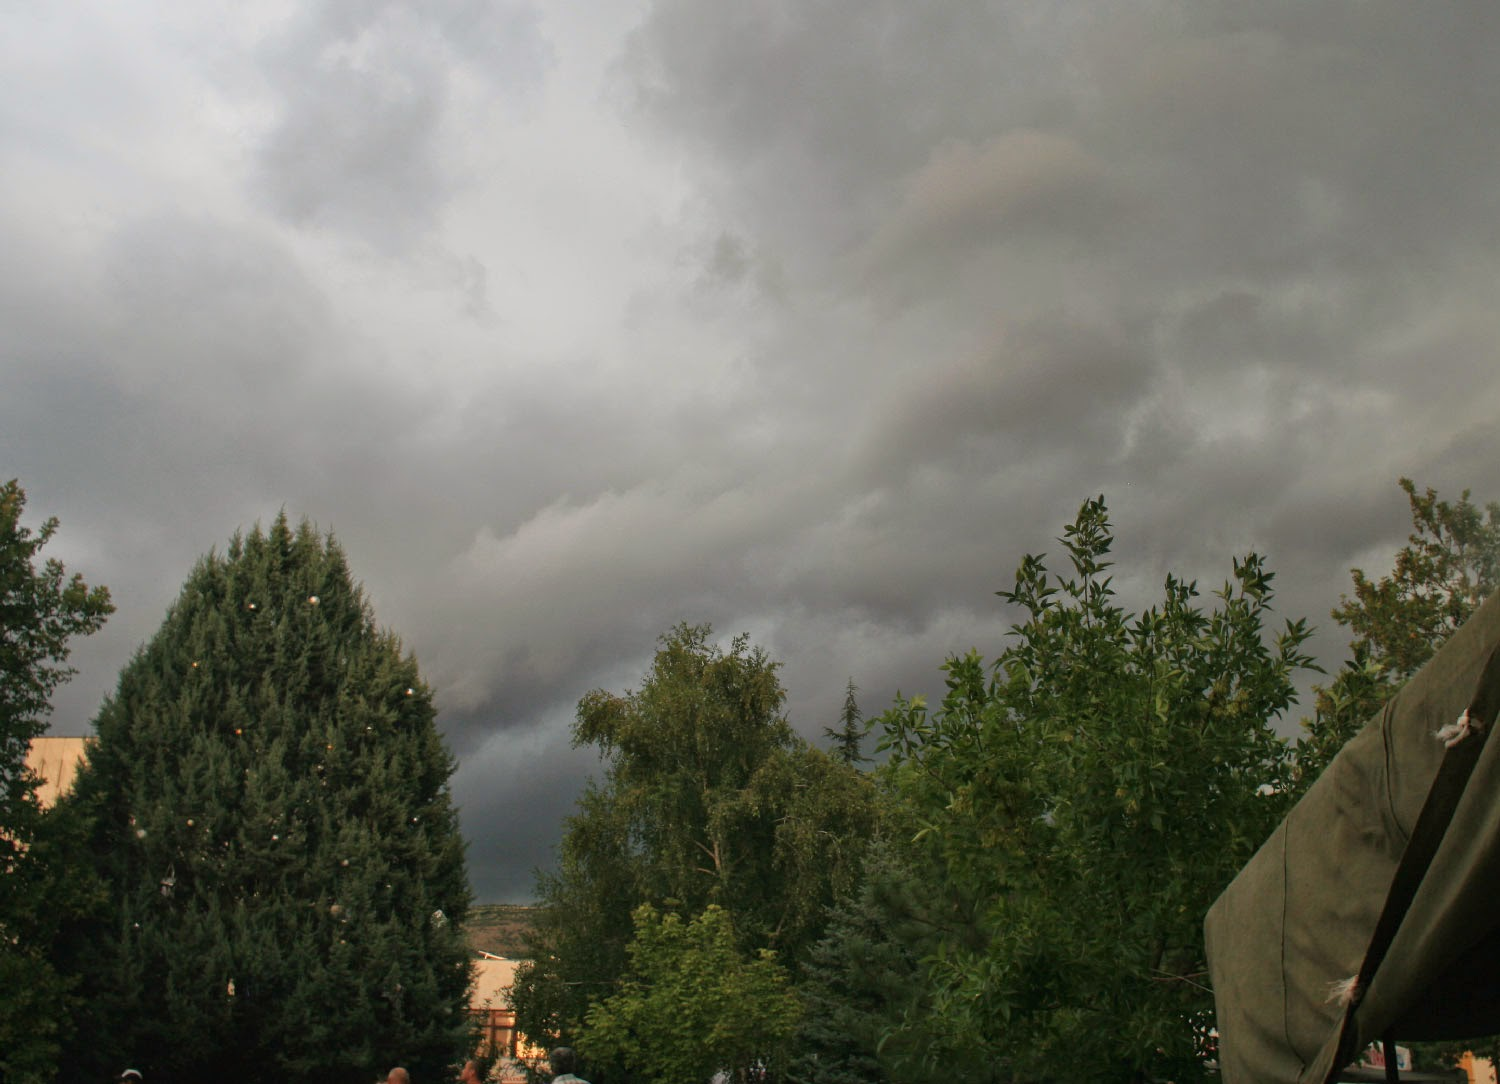 Really black clouds blowing over